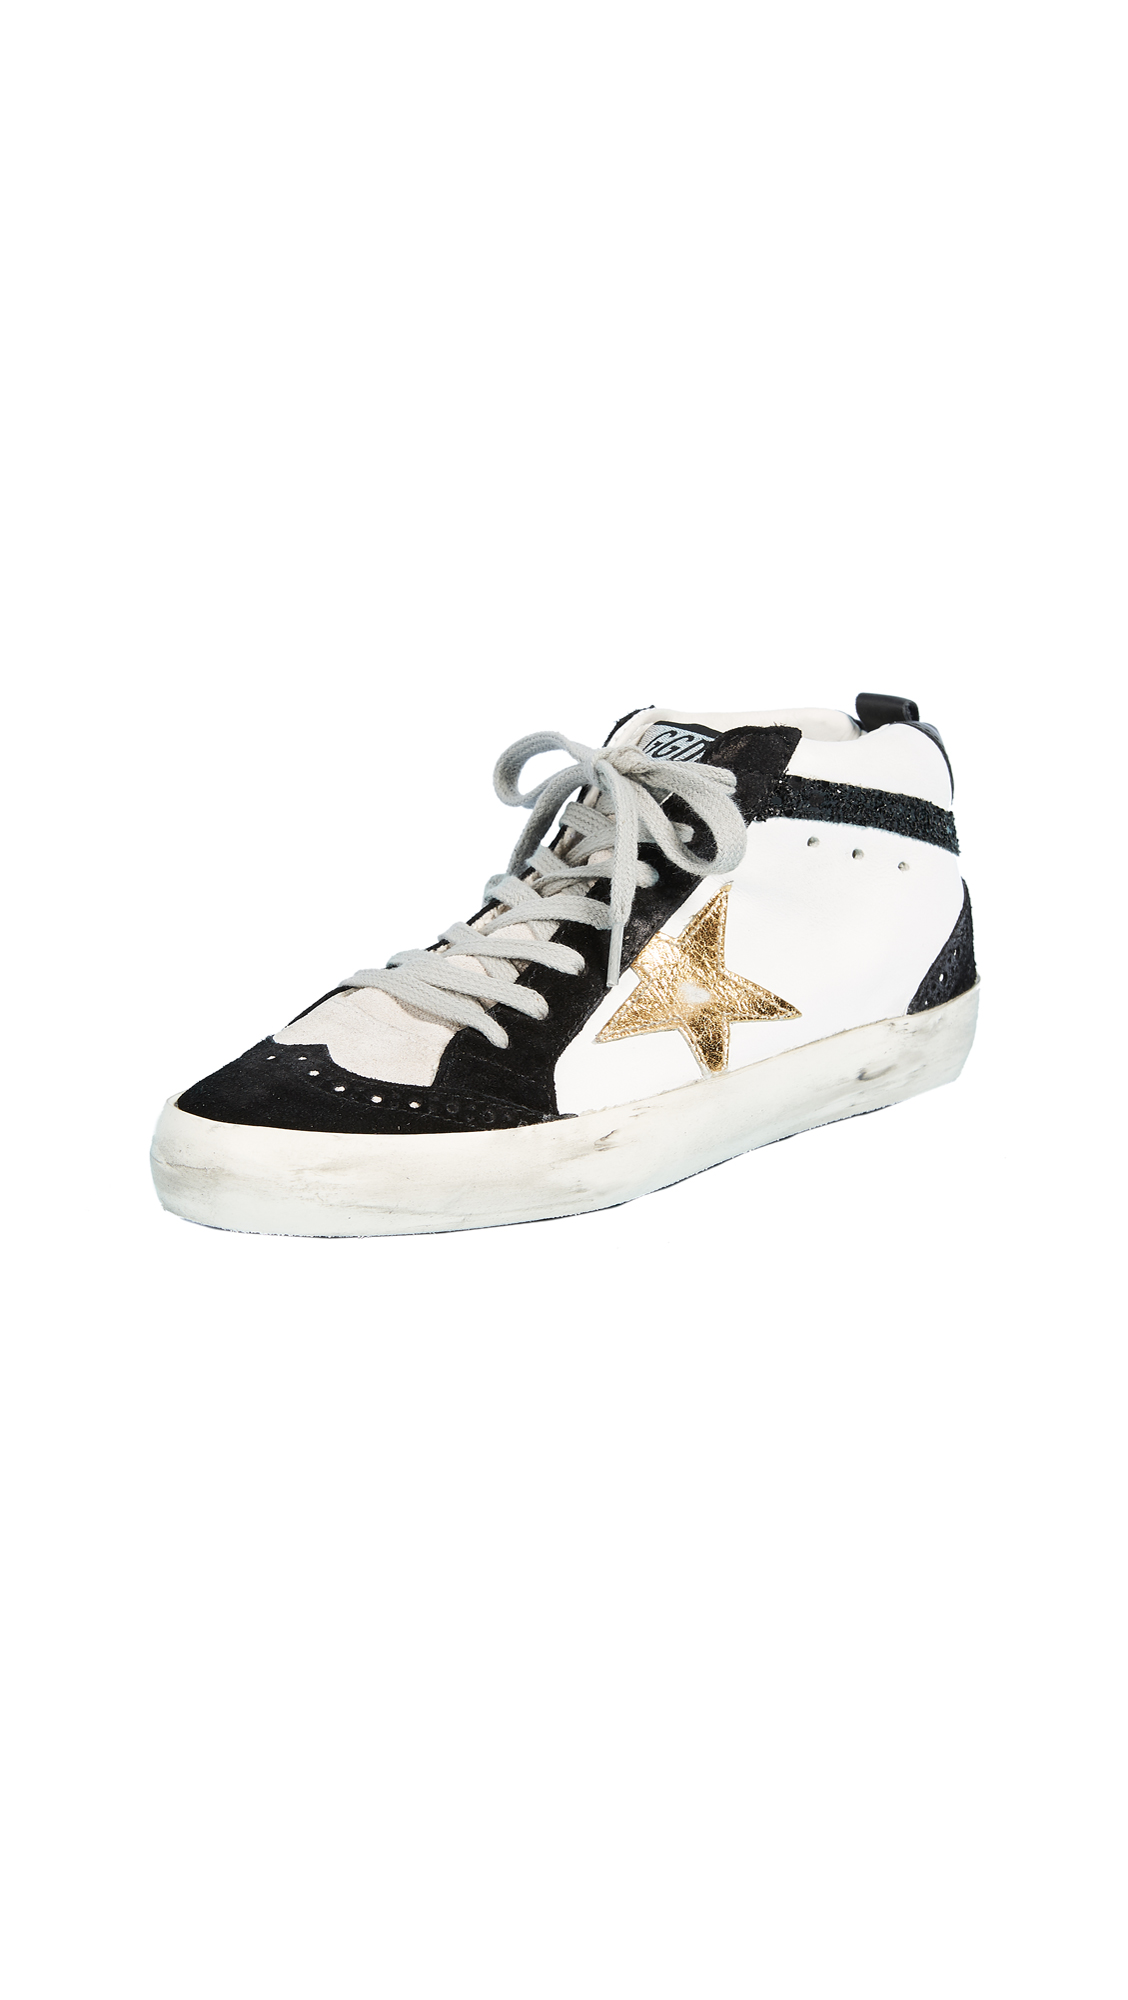 Golden Goose Mid Star Sneakers - White/Black/Gold